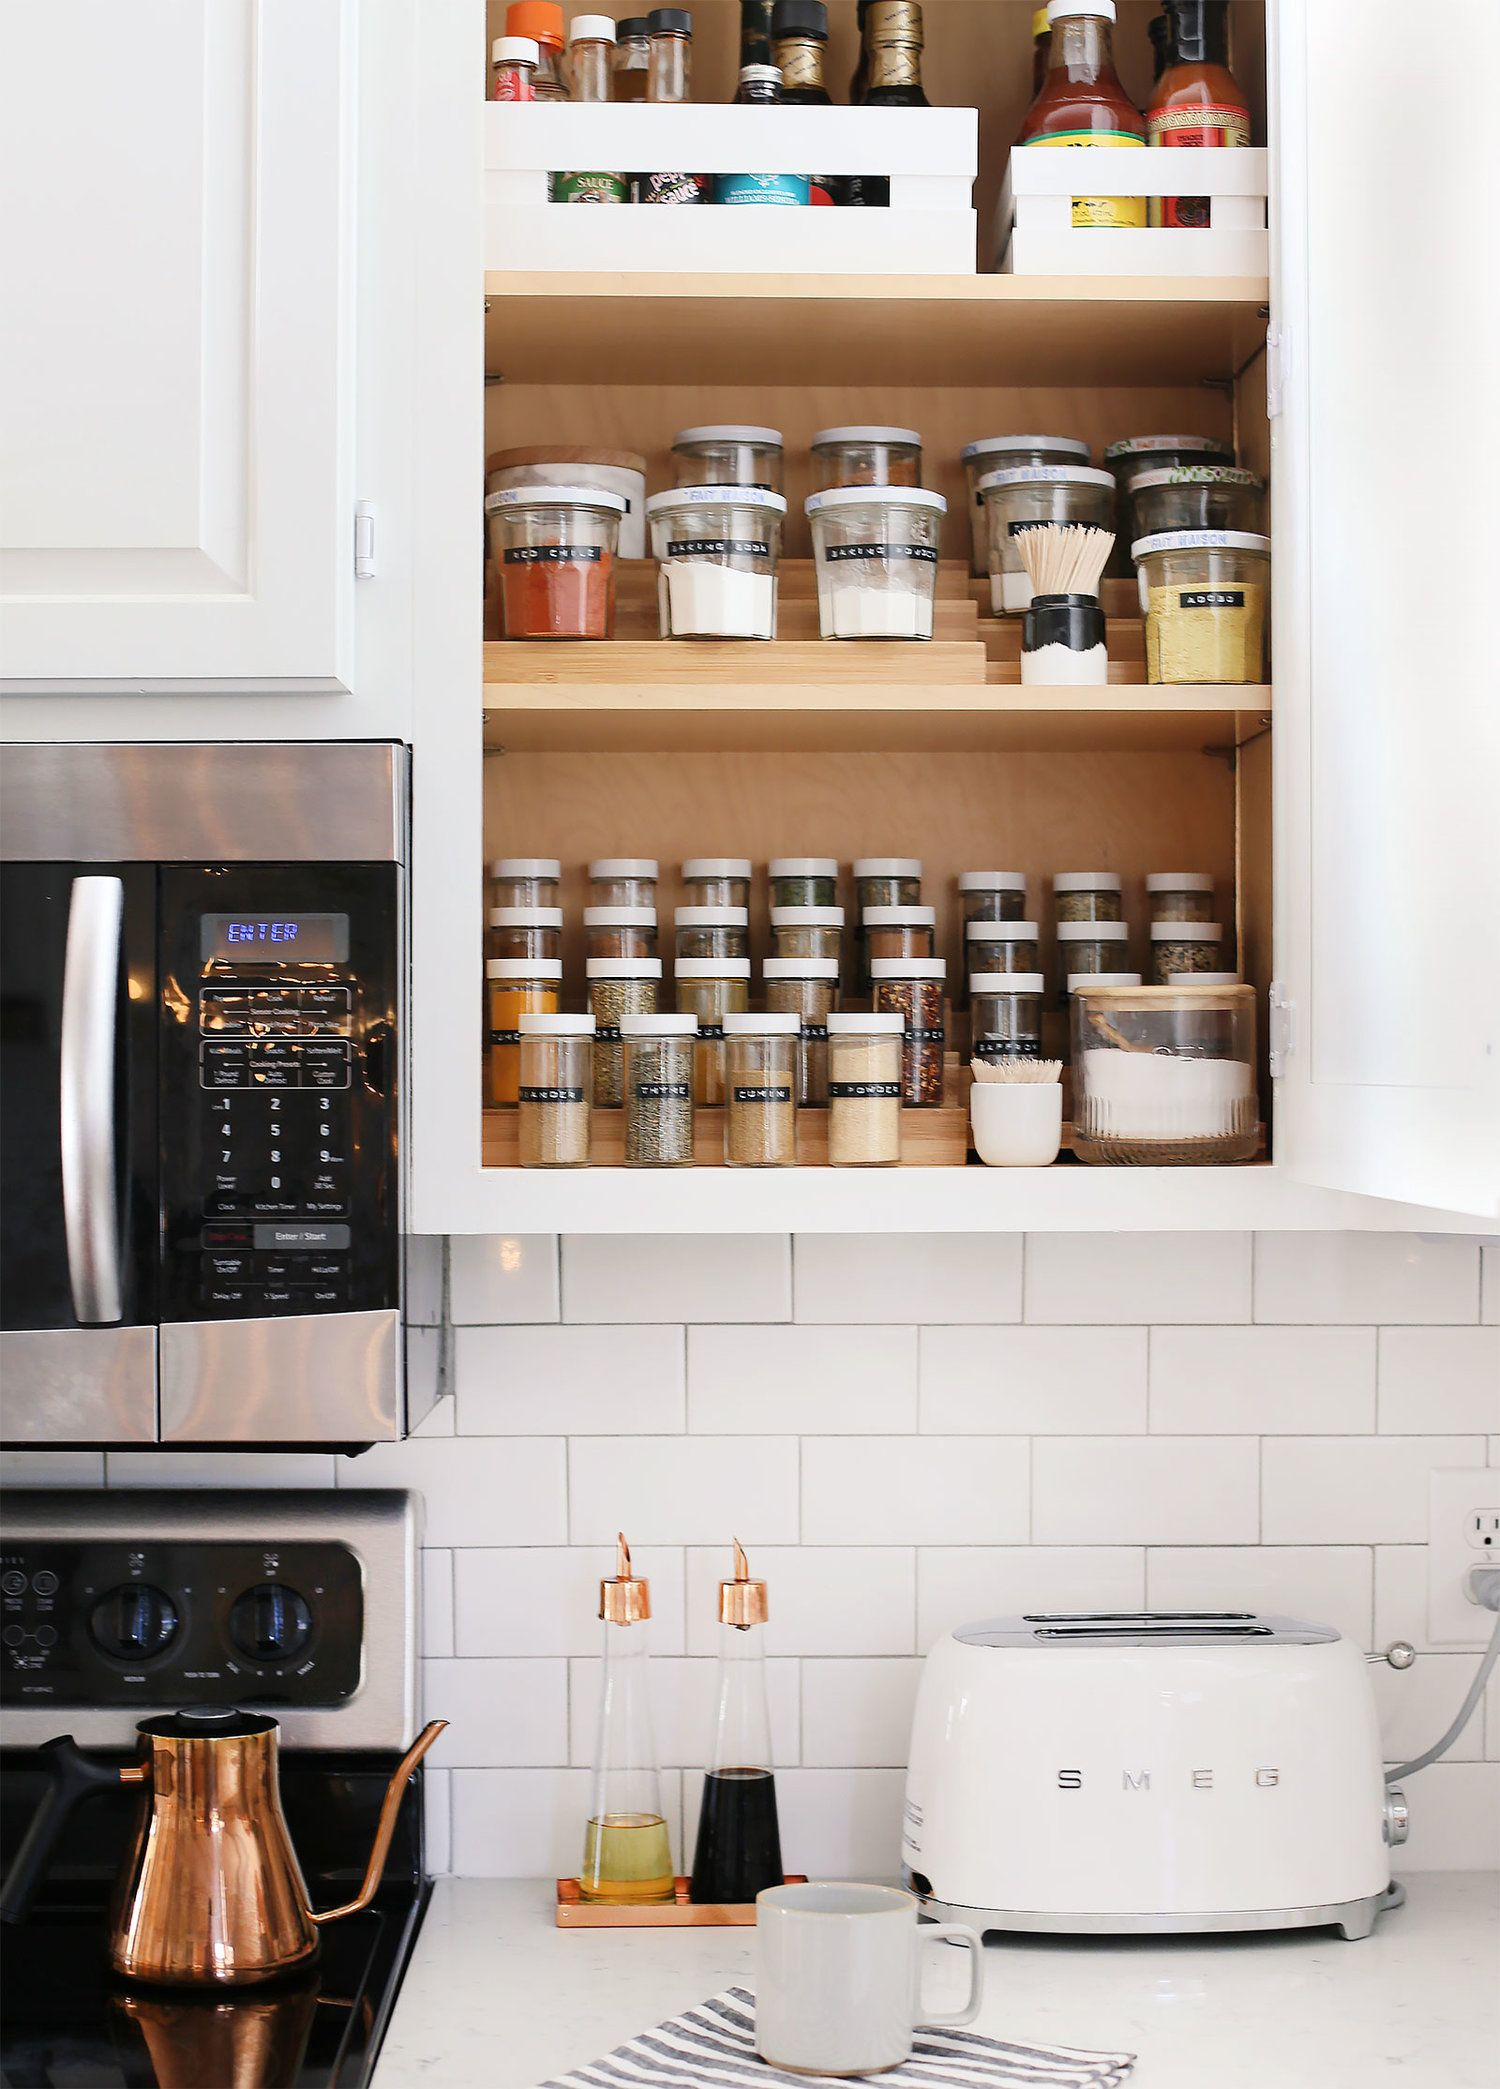 5 Tips To Easily Organize Your Spice Cabinet Sunny Circle Studio Kitchen Renovation Kitchen Cabinet Organization Spice Cabinet Organization